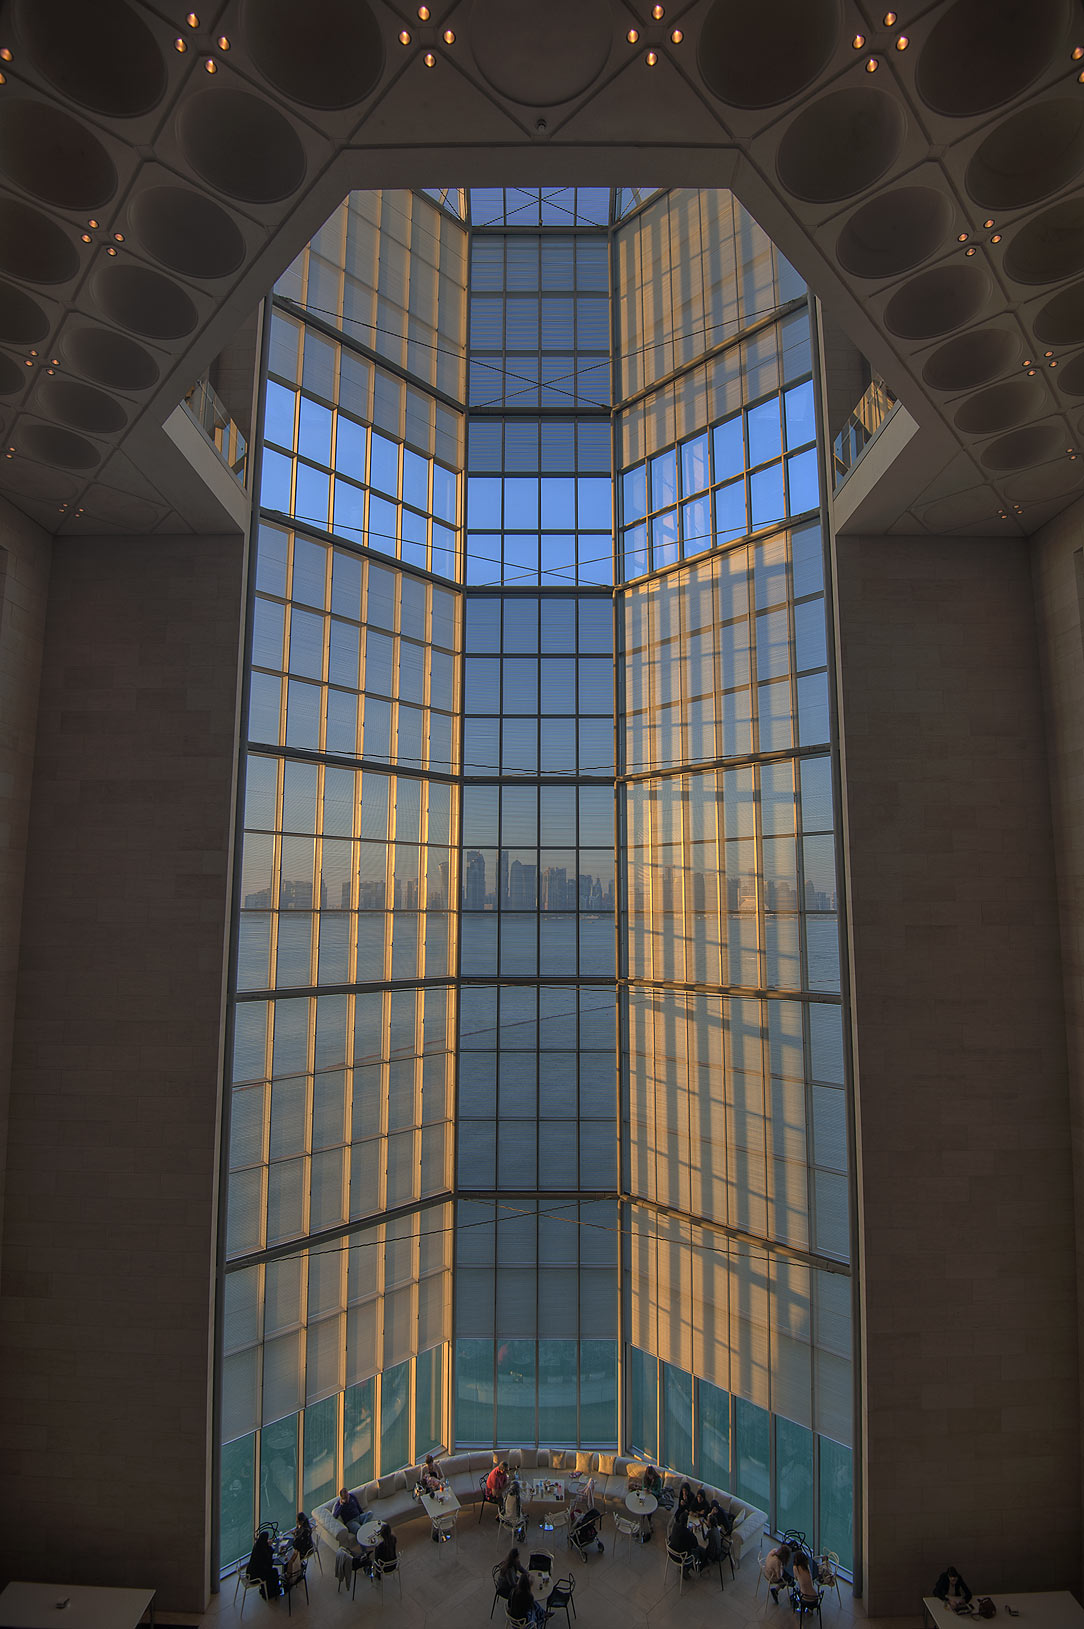 Grand window of Museum of Islamic Art, view from the second floor. Doha, Qatar